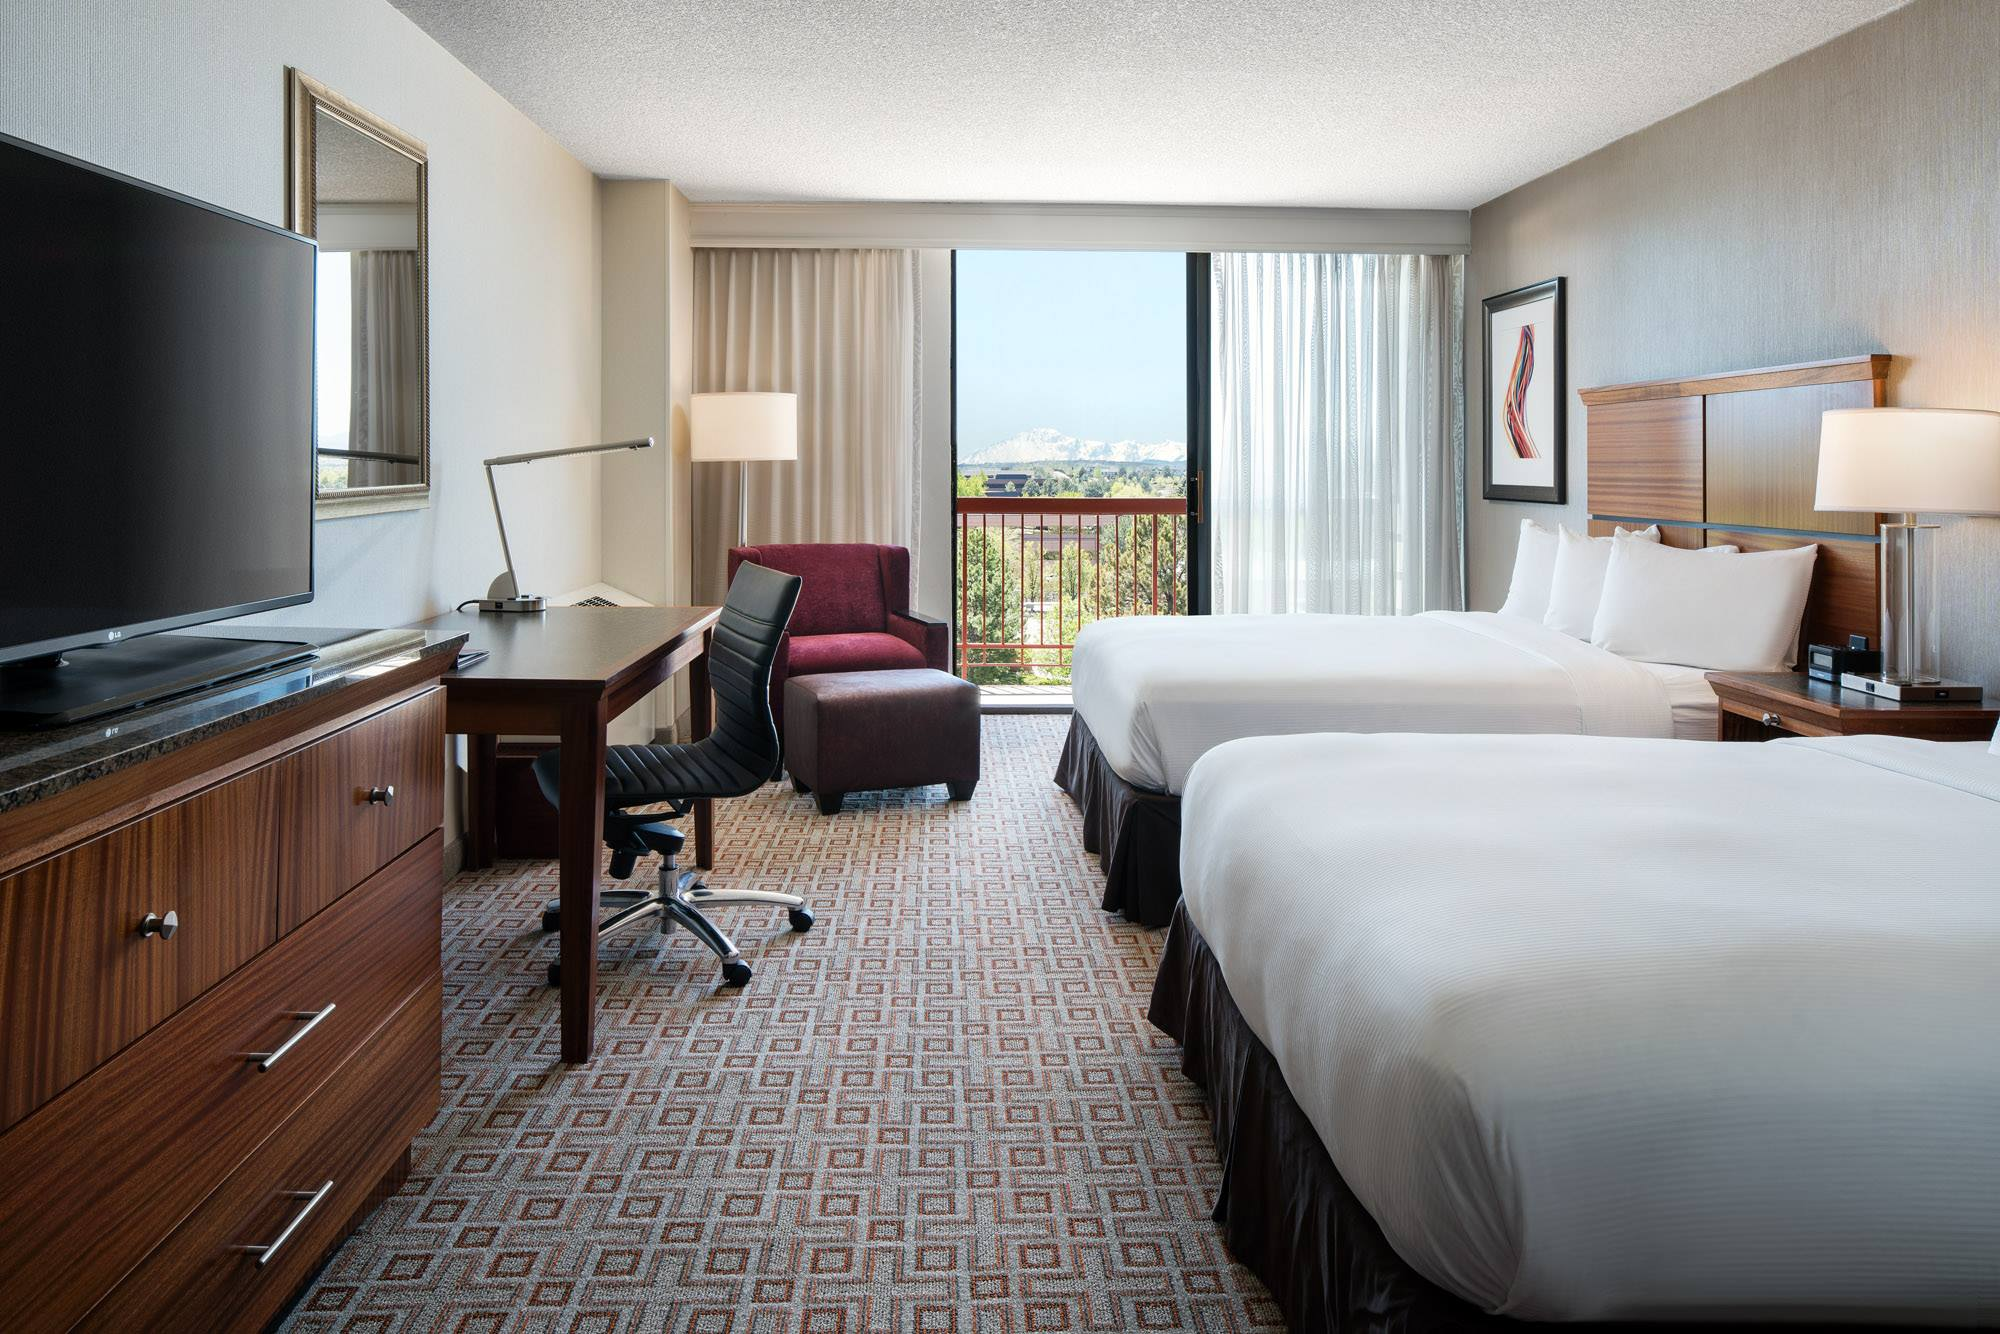 guest room at doubletree hotel in greenwood village